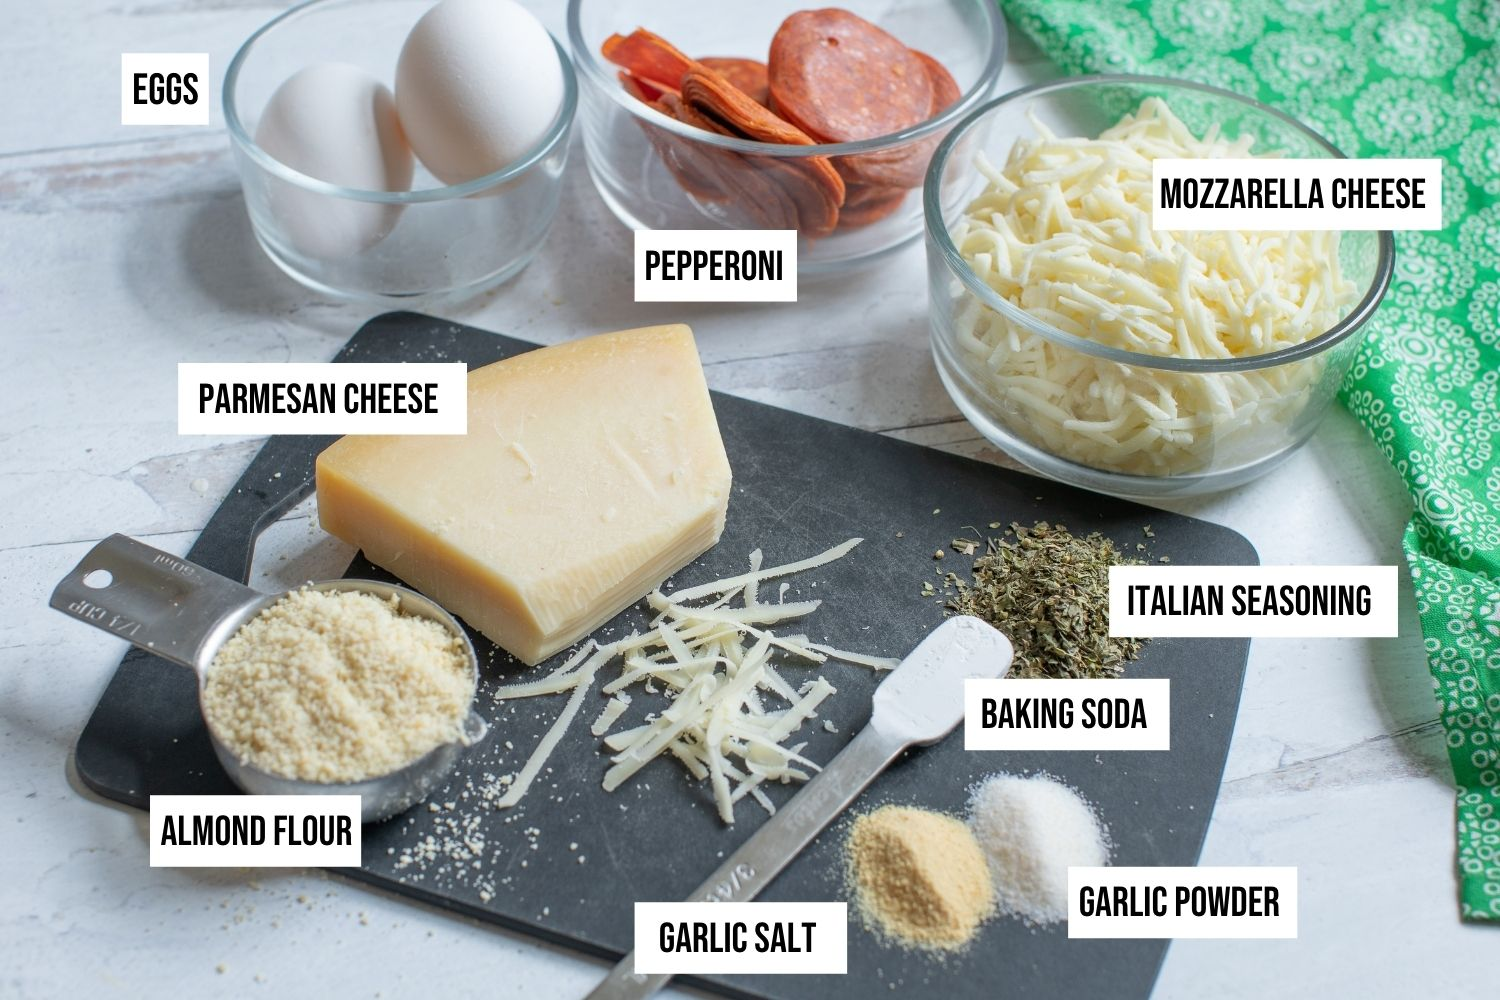 Ingredients in glass bowls are whole eggs, pepperoni slices, shredded mozzarella cheese.  Ingredients on a cutting board are seasonings, flour and cheese.